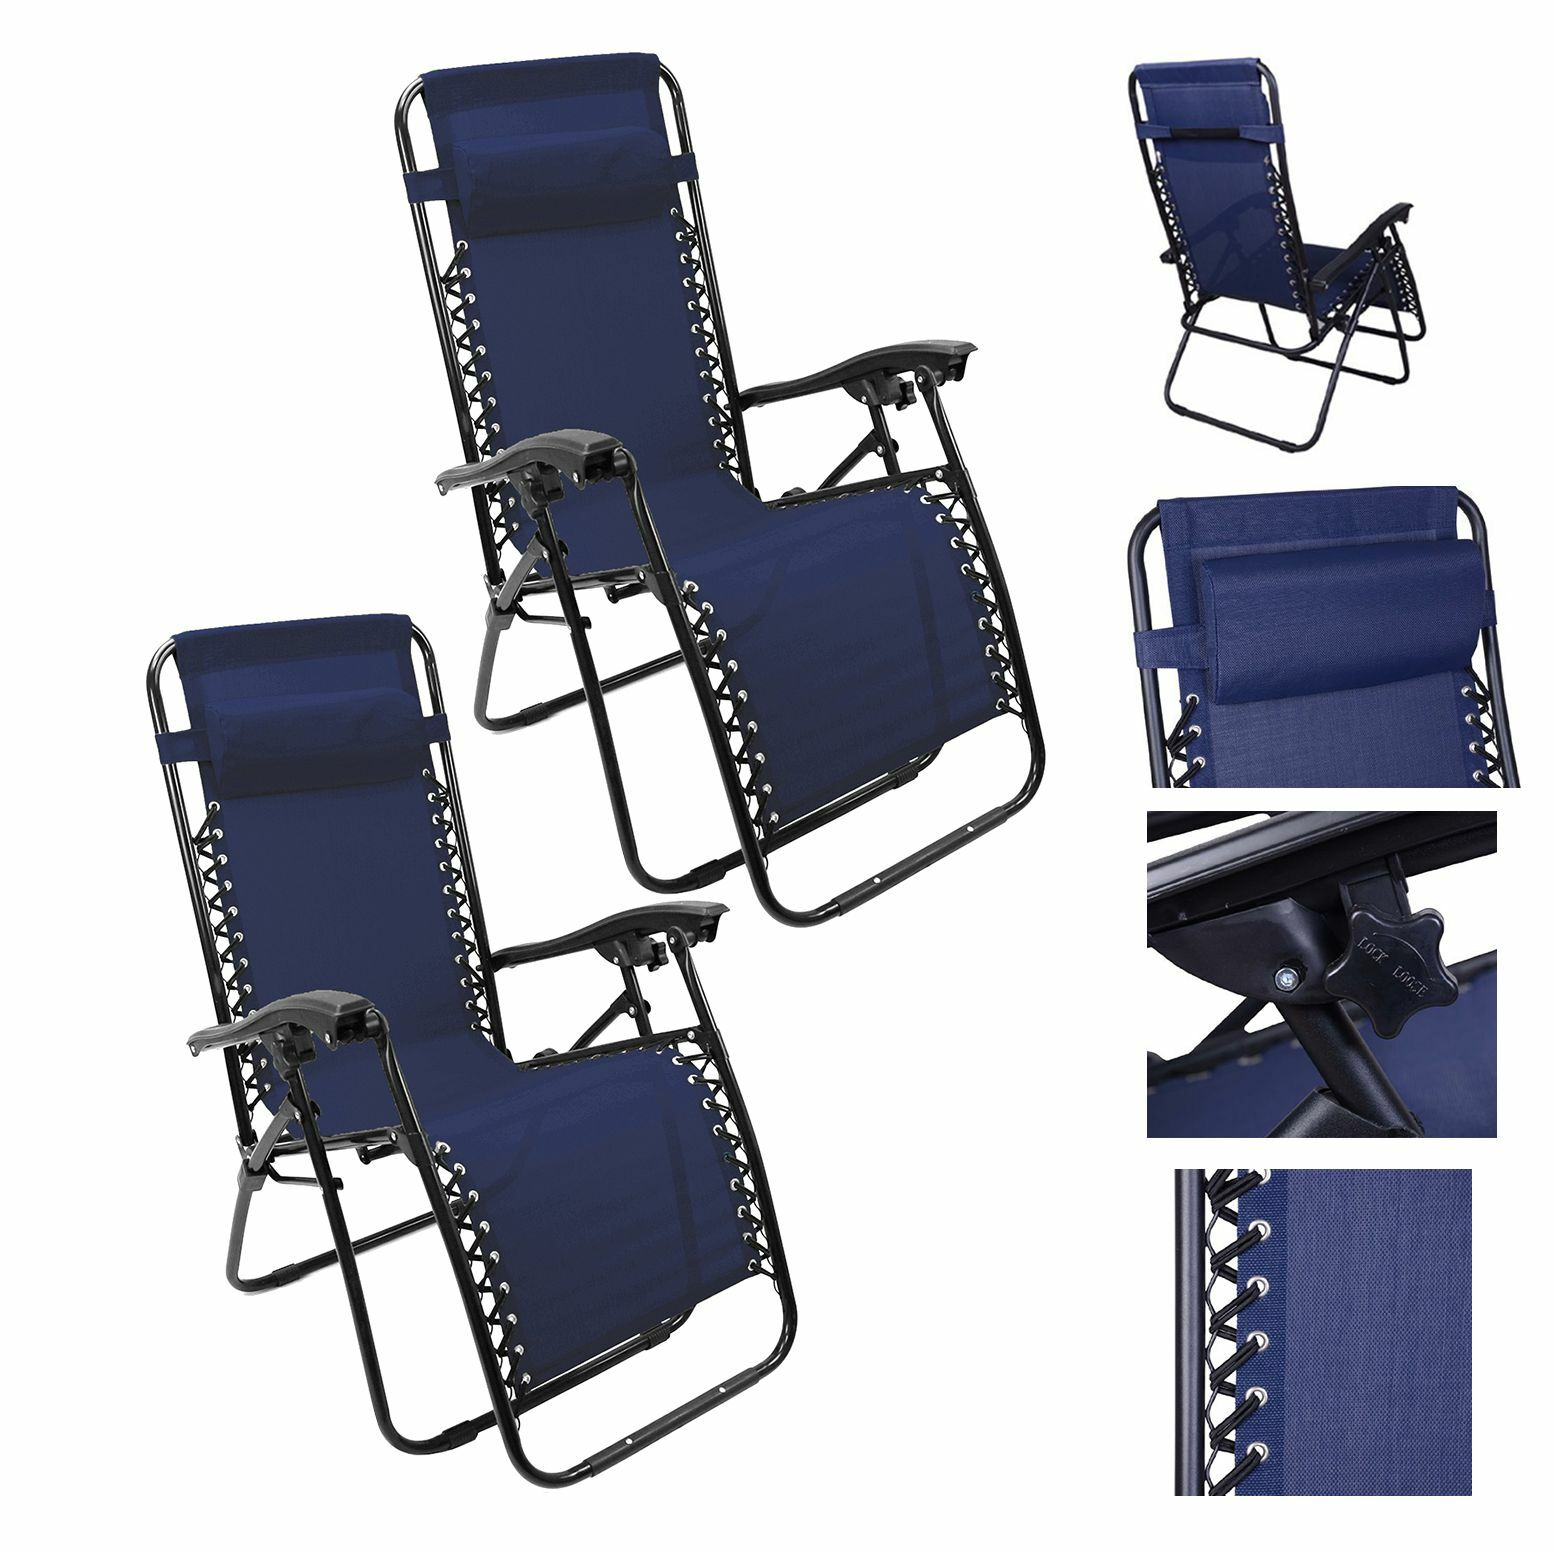 Fine Details About Lounge Chair Recliner Sun Patio Pool Beach Outdoor Folding Chair 1Pair Navy Blue Ocoug Best Dining Table And Chair Ideas Images Ocougorg